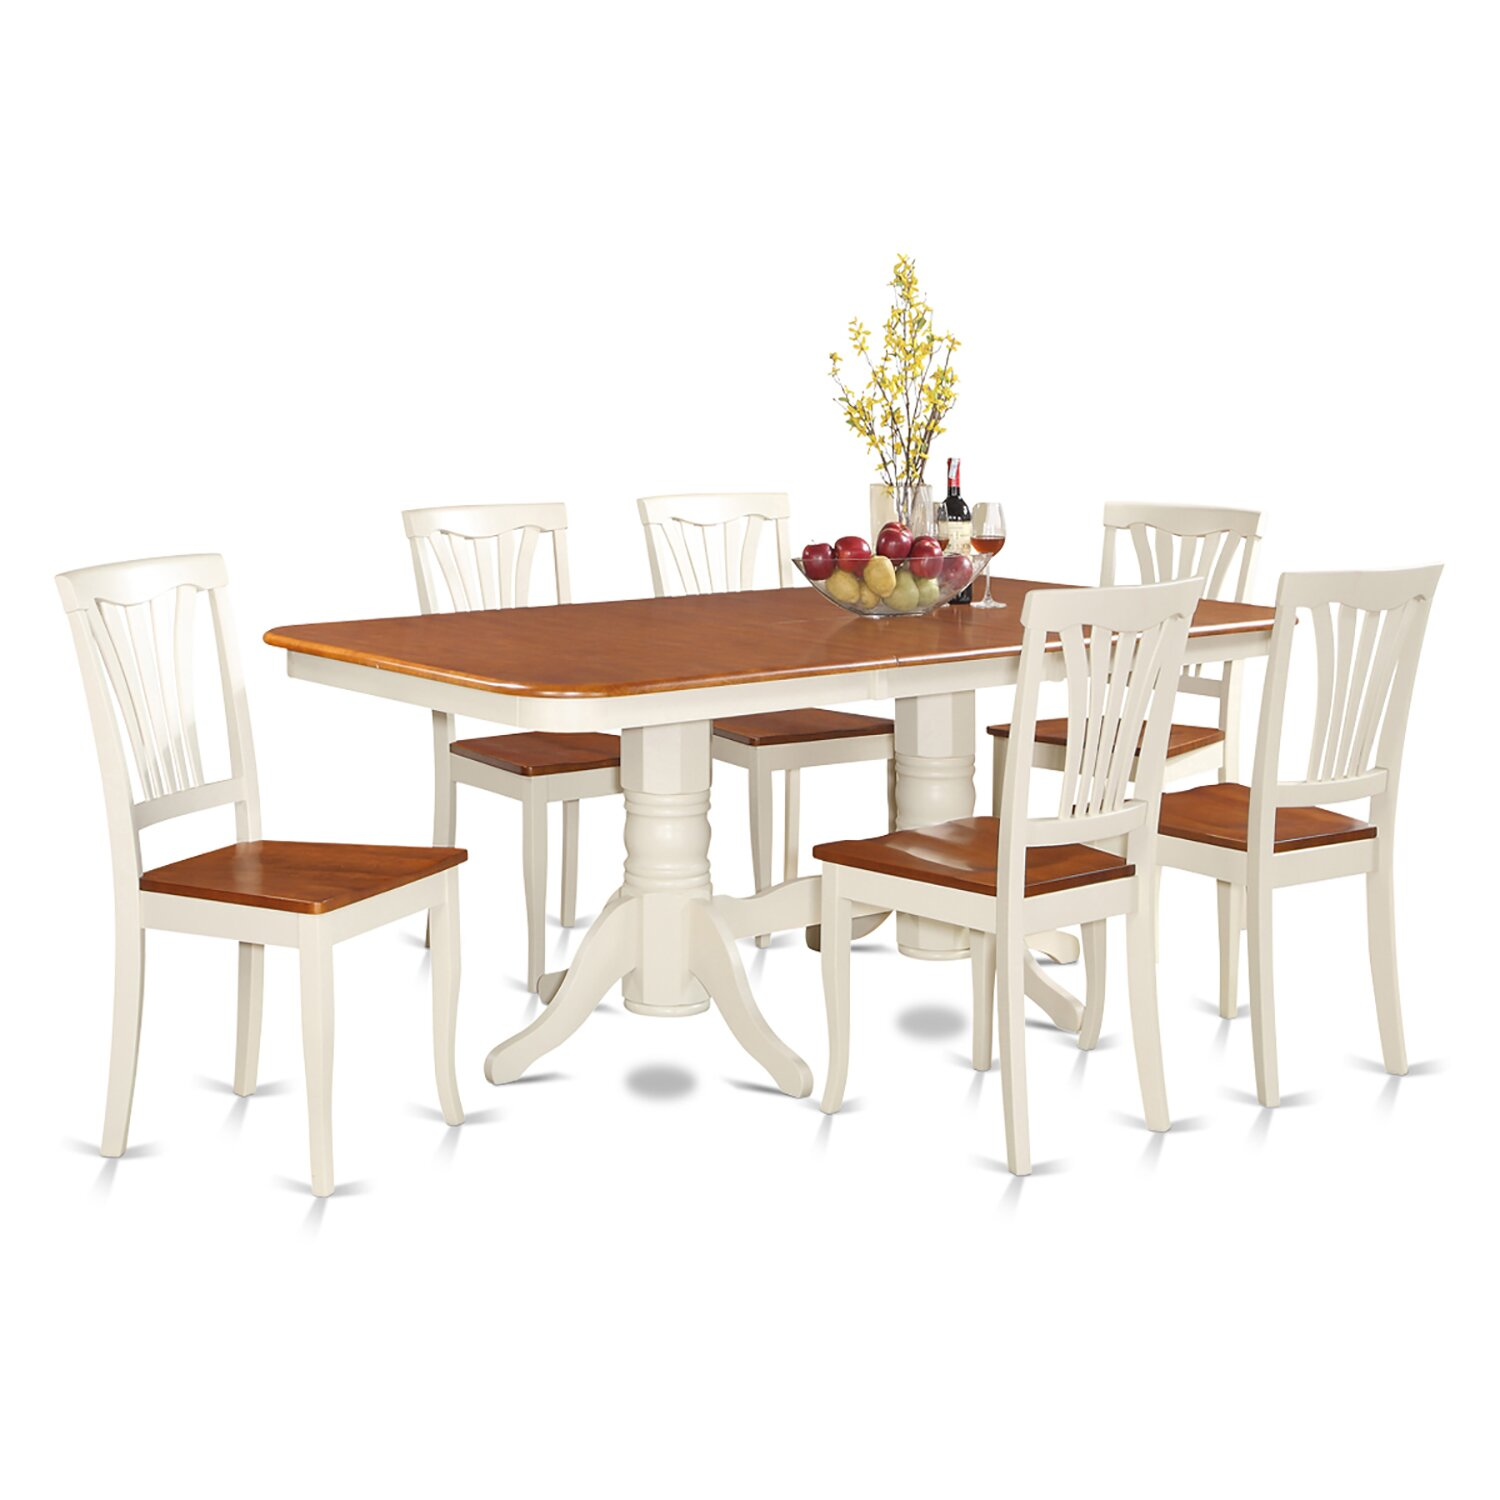 Wooden importers napoleon 7 piece dining set reviews for 2 piece dining room set